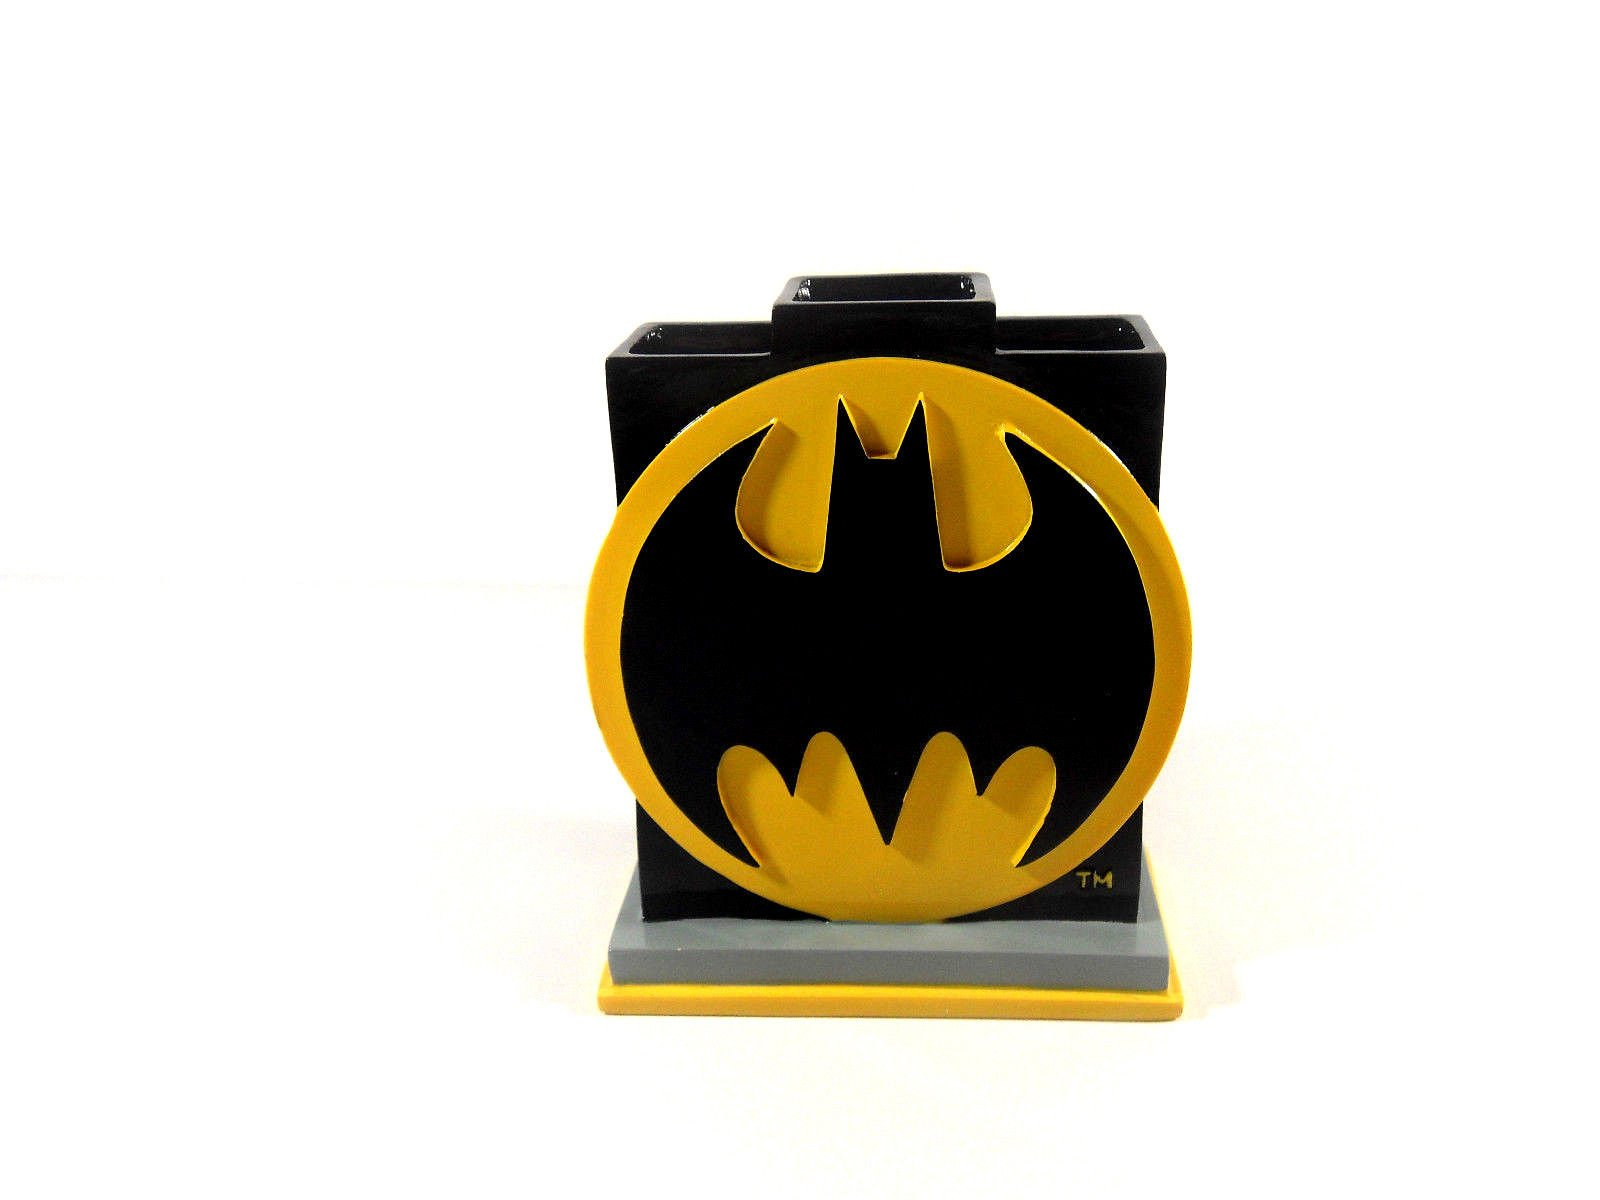 Batman Bathroom Set, Shower Curtain, Hooks, Bath Rug, Bath Towel, Pump Lotion, Toothbrush Holder by Batman (Image #4)